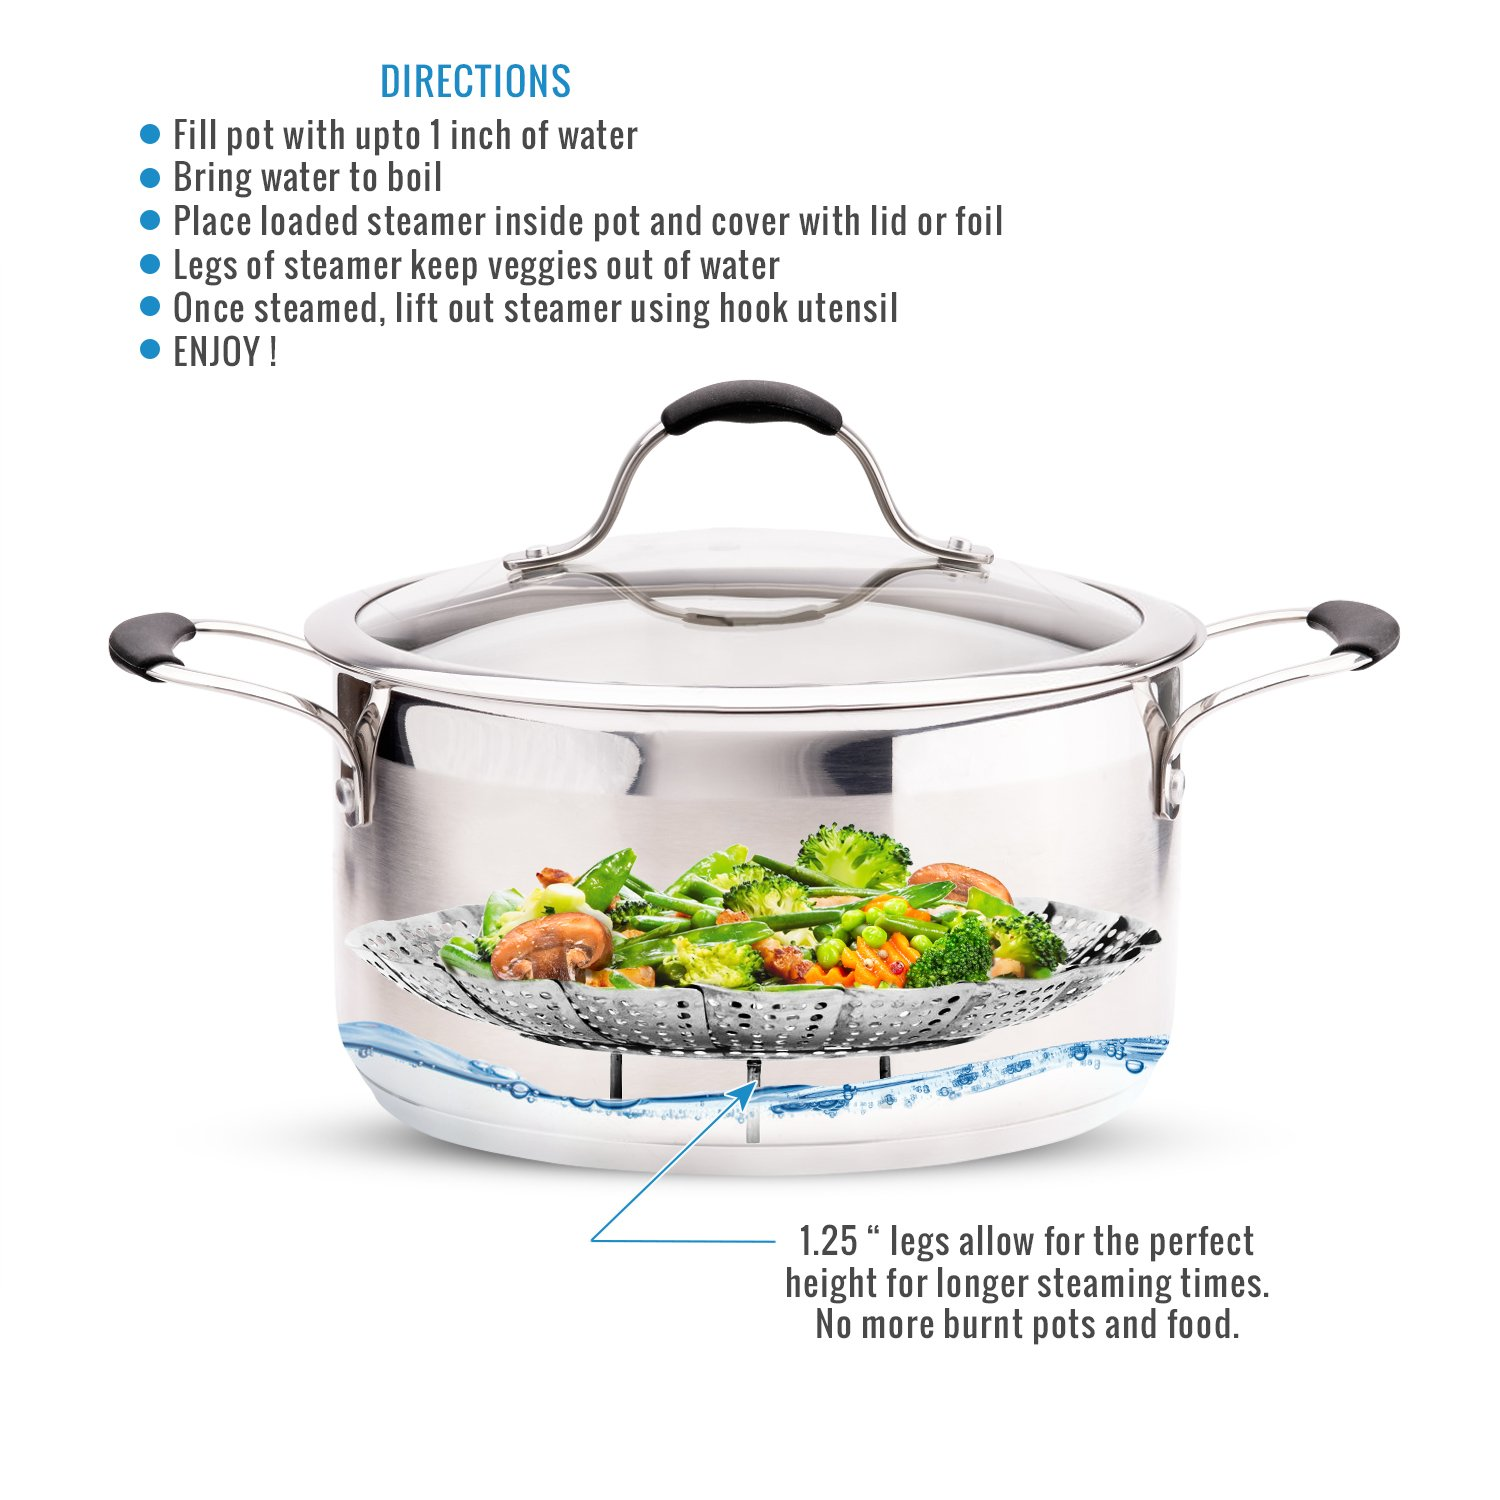 Pressure Cooker /& Instant Pot Accessories 100/% Stainless Steel Two-Pack Safety Tool Large and Standard Vegetable Steamer Basket Set Egg Rack Sensible Needs SYNCHKG107610 Pot in Pot 2X Steamer Inserts for Instant Pot